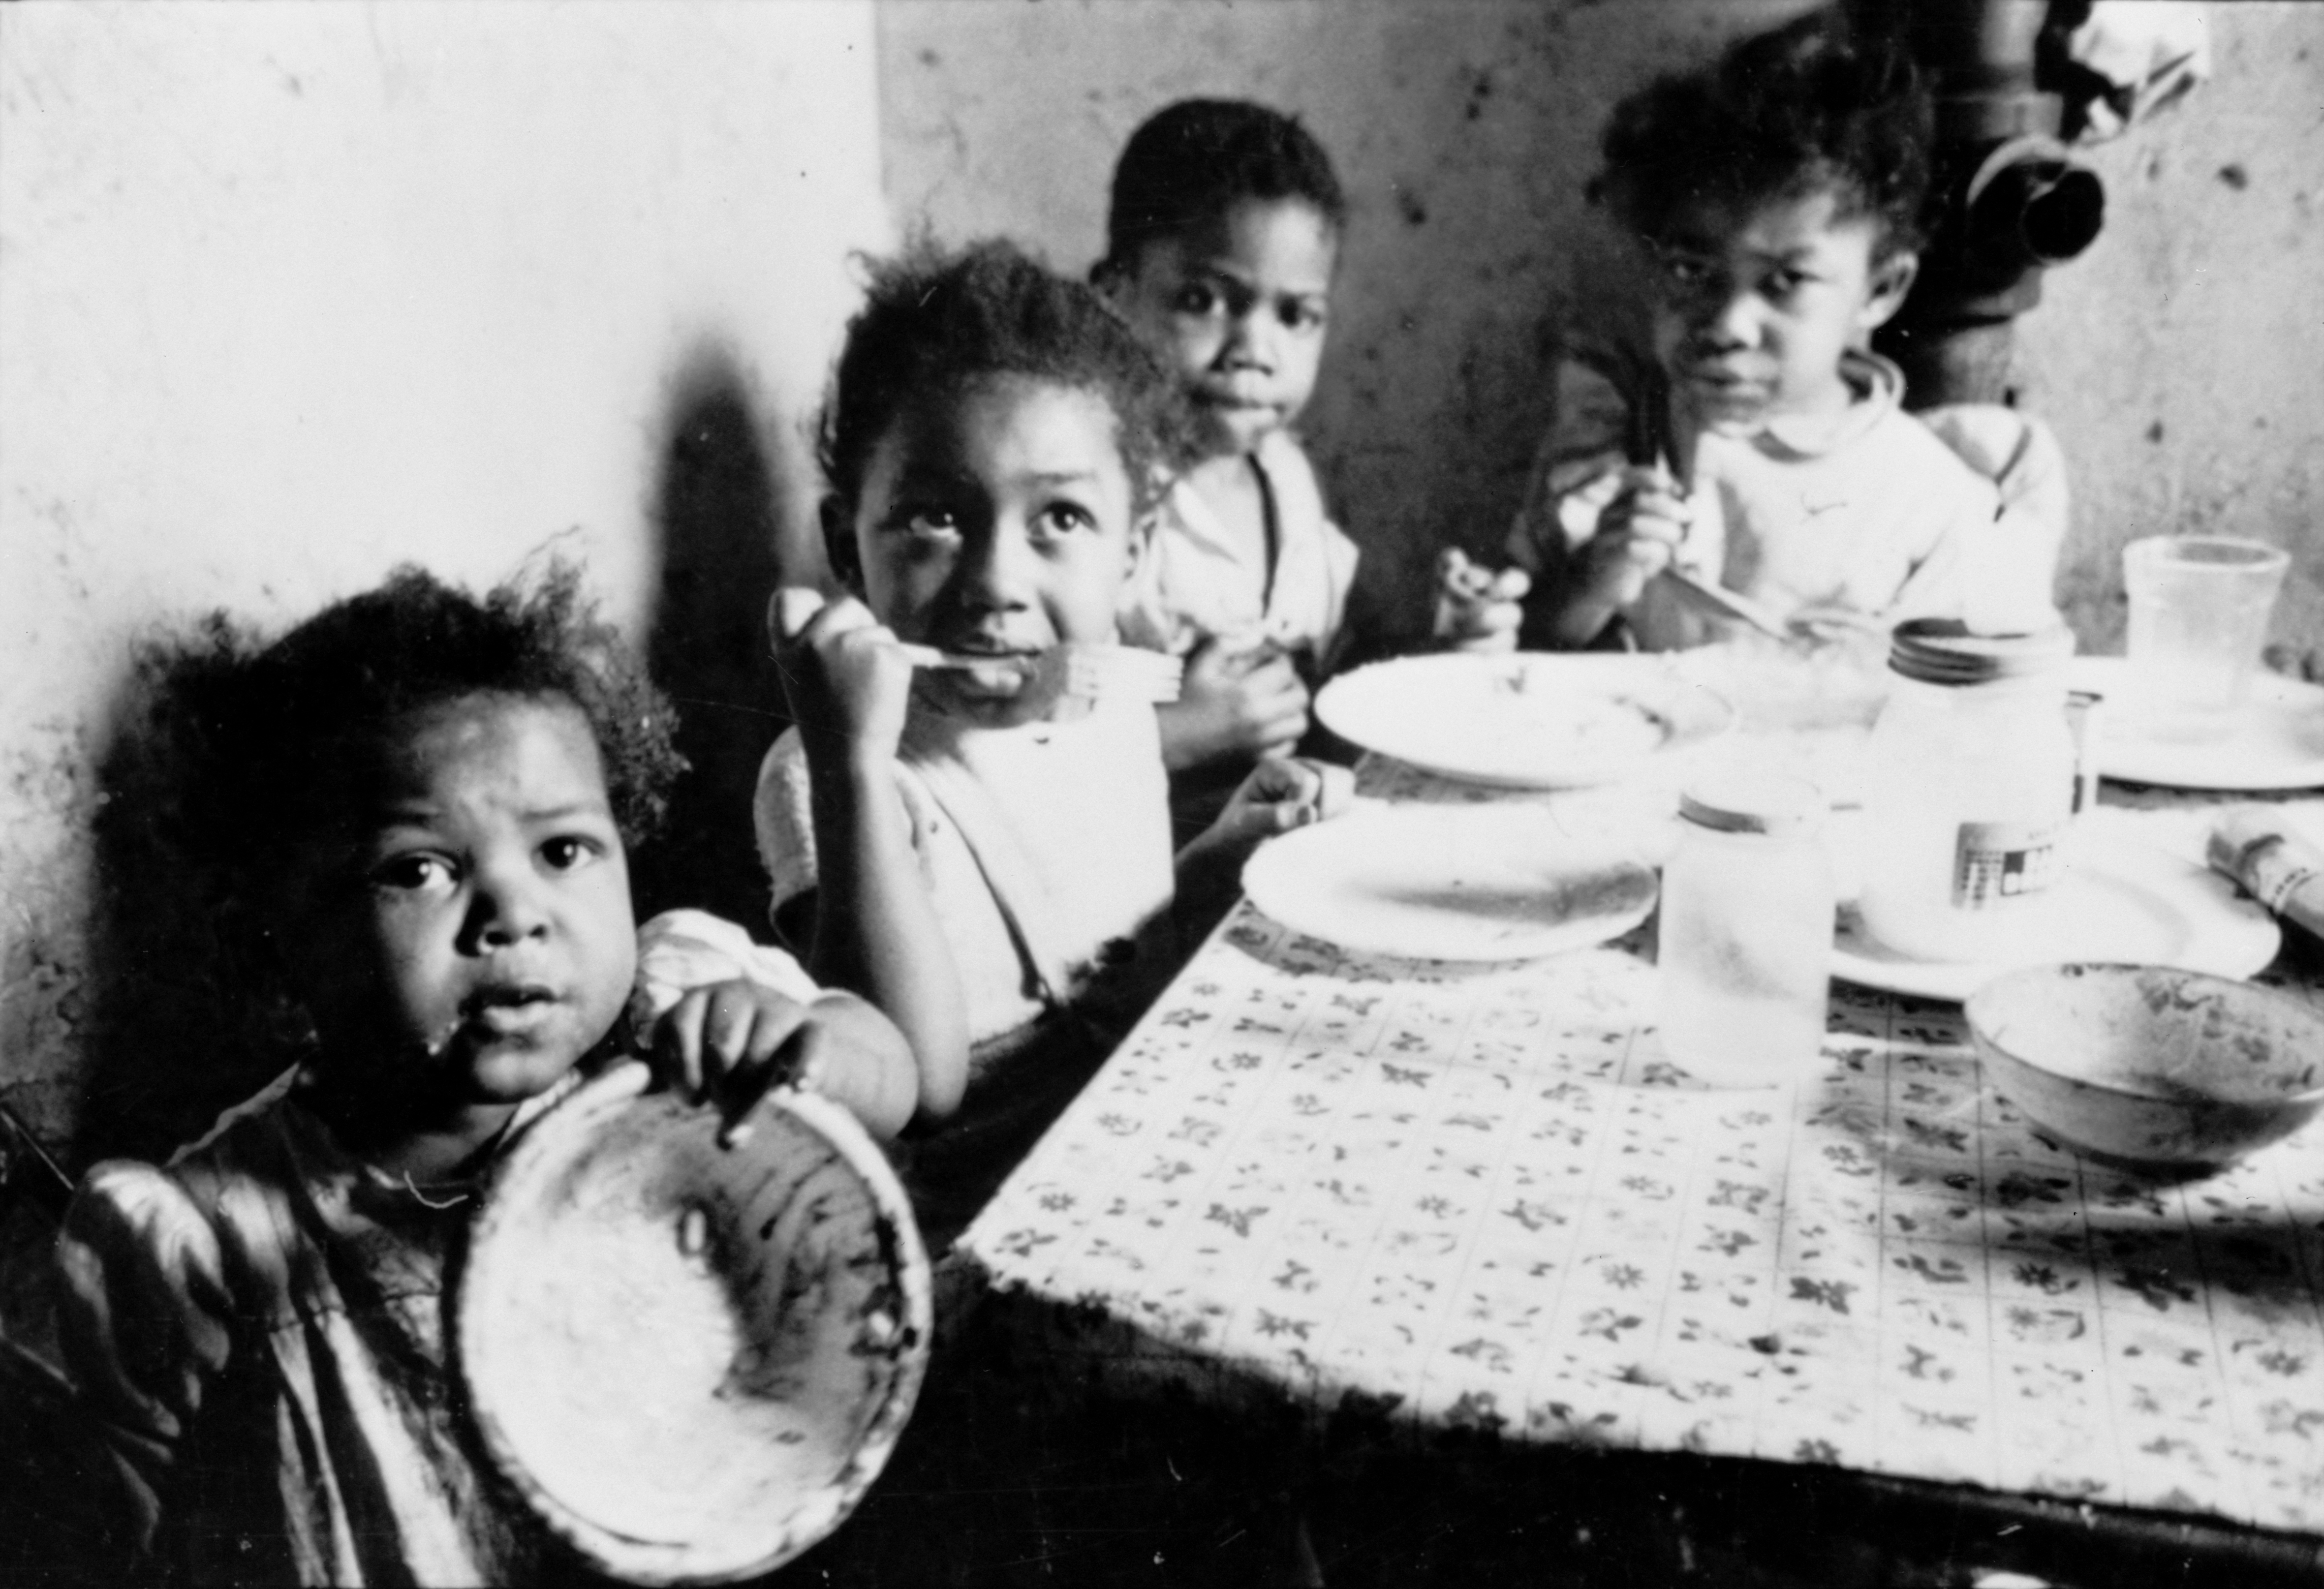 Stanley Kubrick - African American children at table cph.3d02356